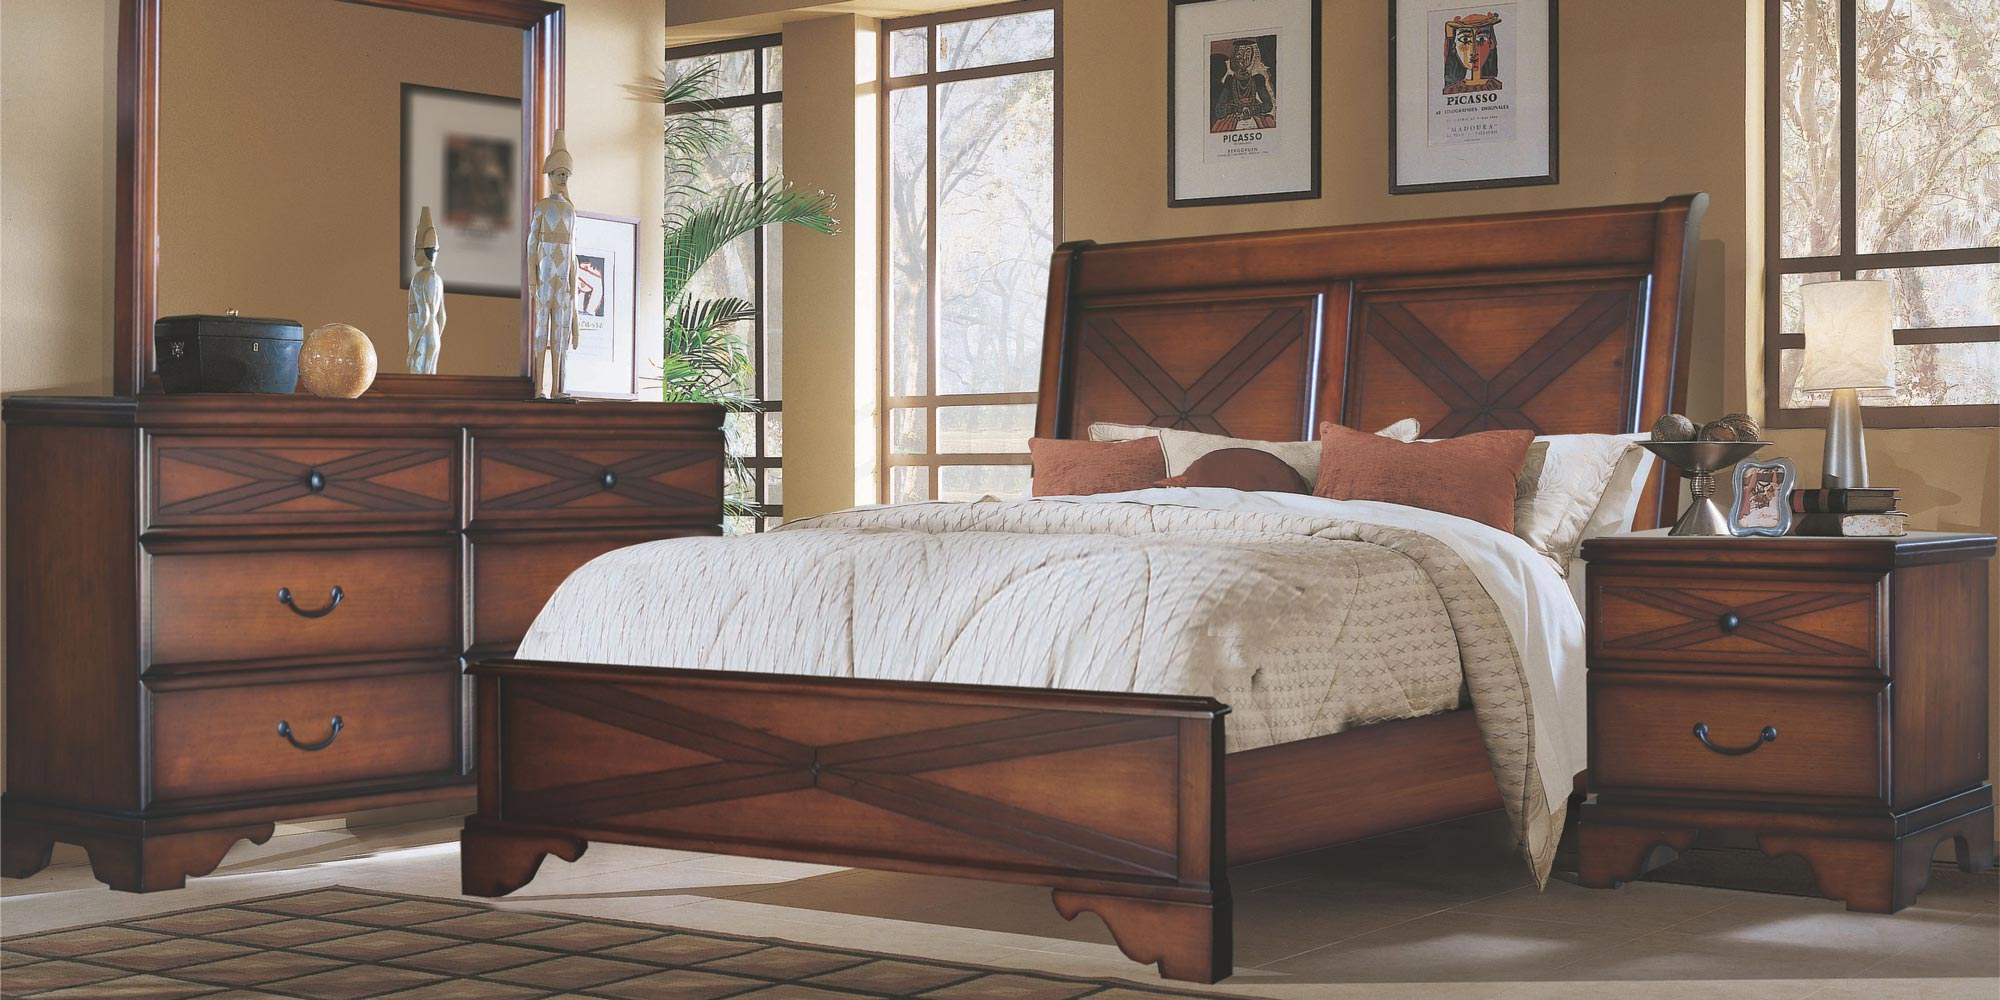 Marvelous photograph of Bedroom Furniture Trinidad on The Building Source with #65473C color and 2000x1000 pixels